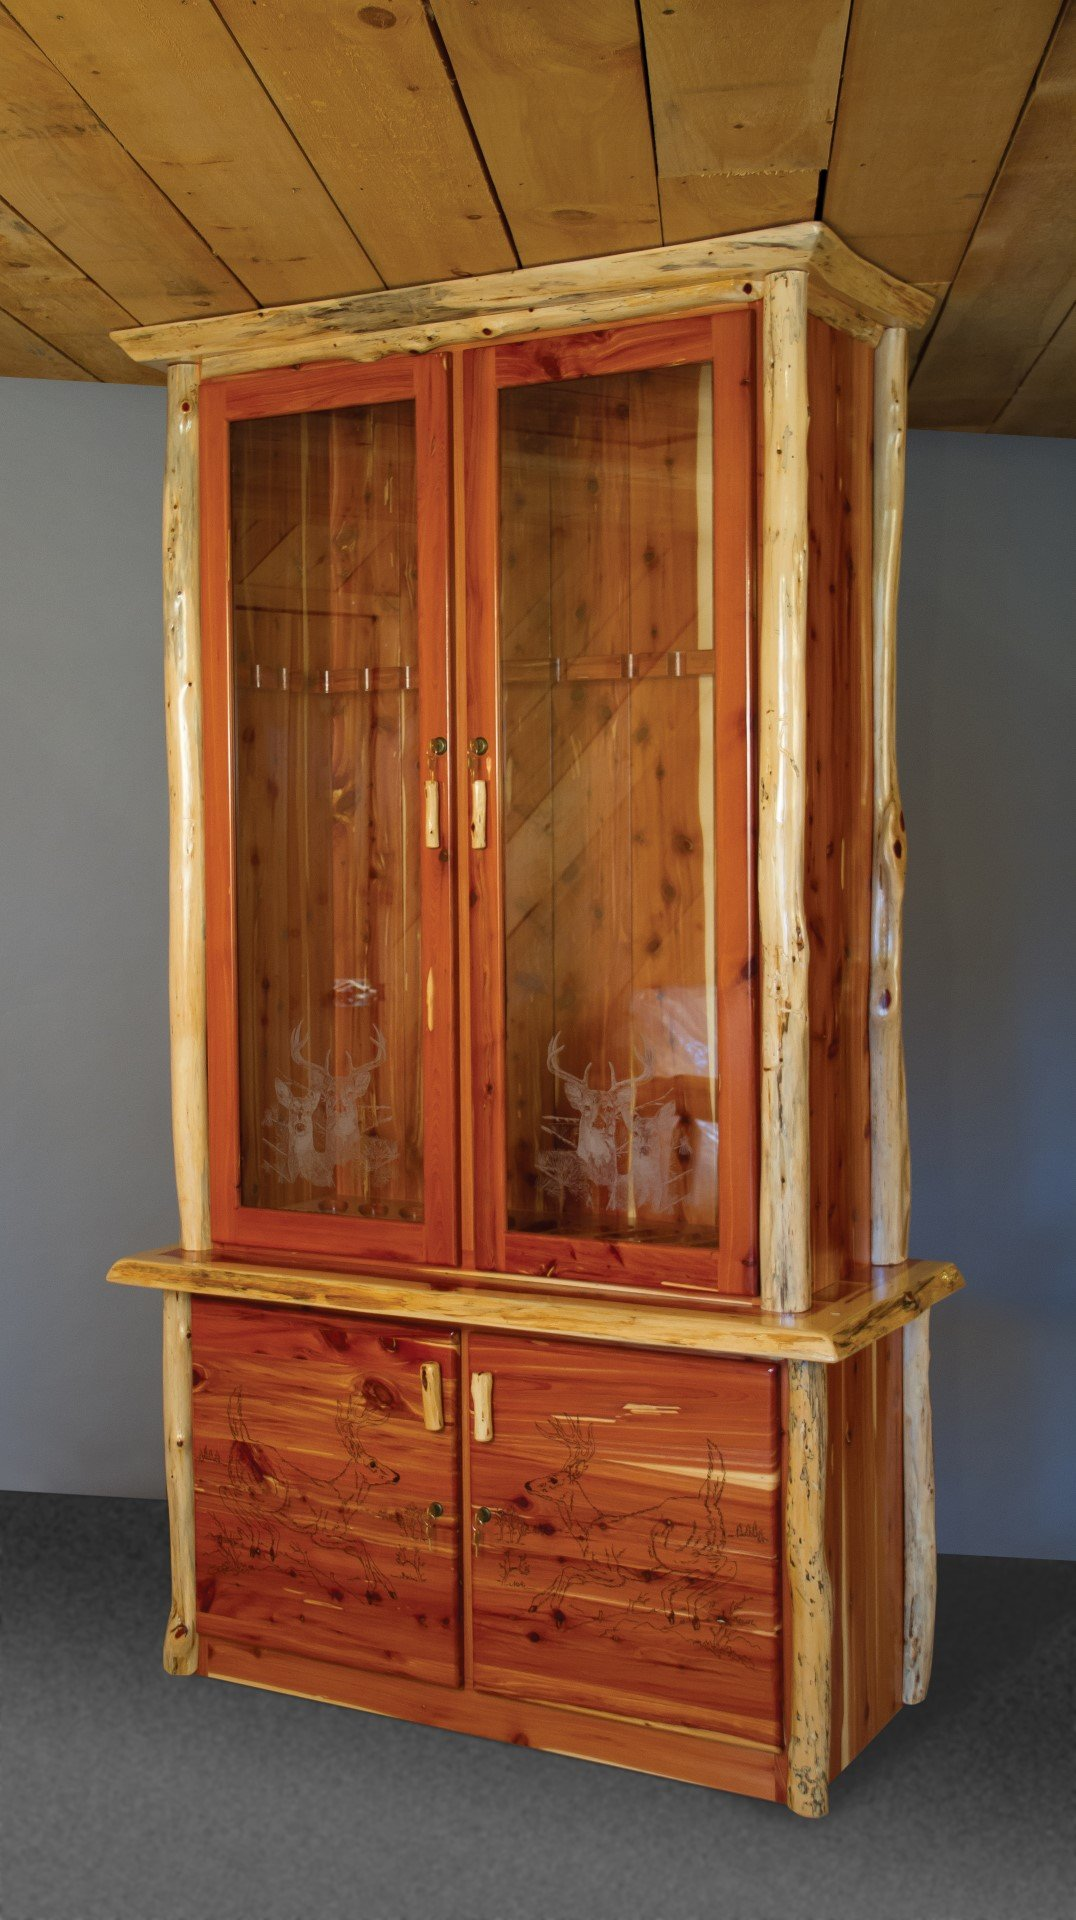 Rustic Red Cedar Log 12-Gun Cabinet - Amish Made in the USA